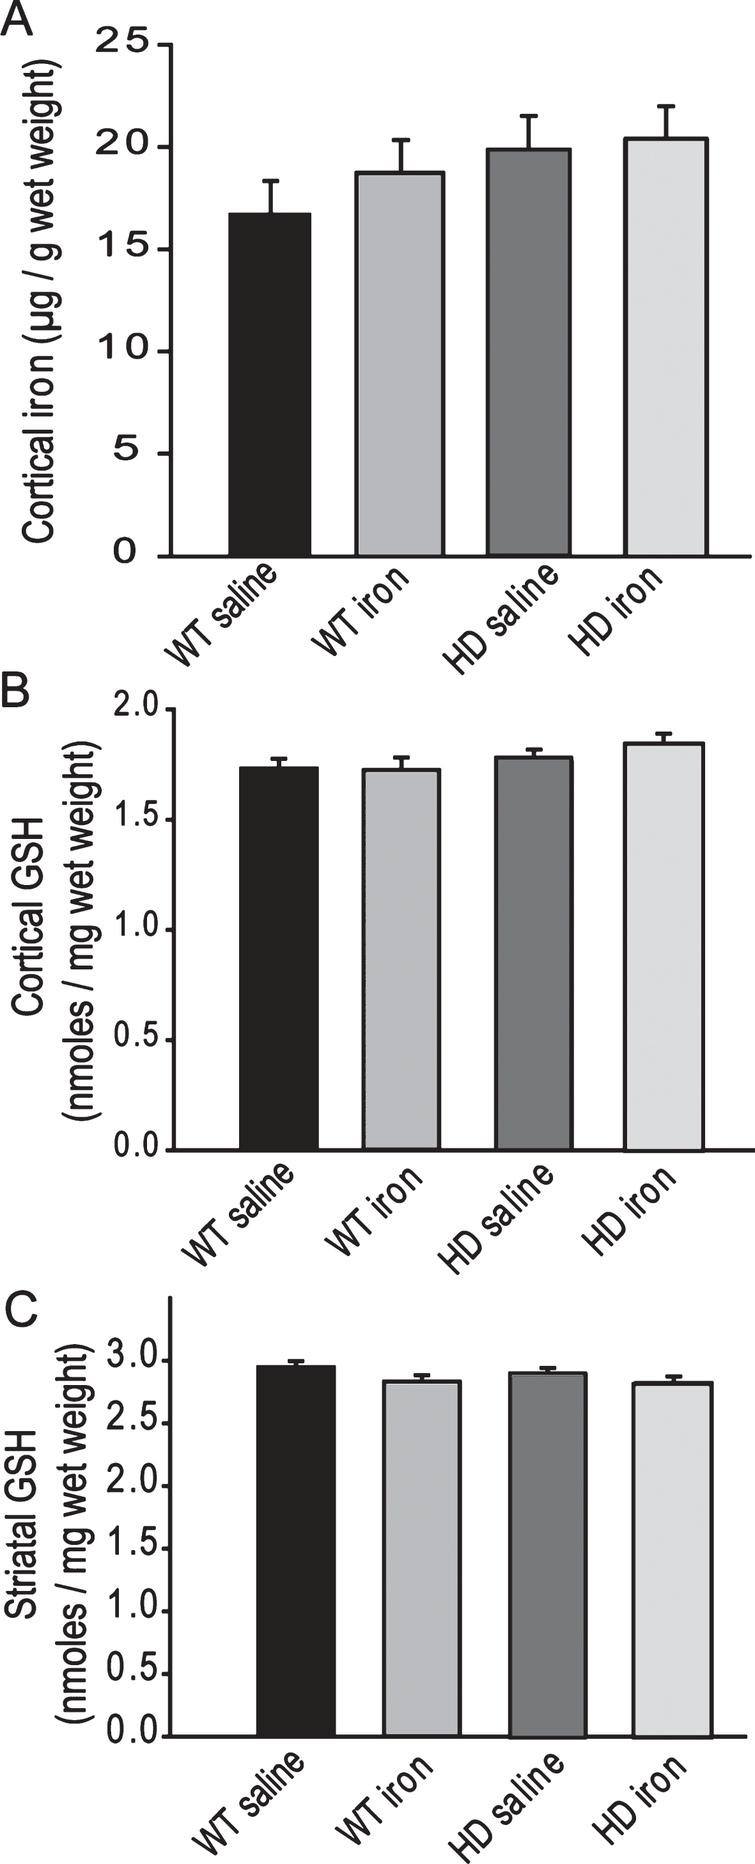 Neonatal iron supplementation does not alter brain iron or glutathione. Mice were supplemented at 10–17 days and sacrificed at 1-year of age. A. Cerebro-cortical iron is not altered by HD or the presence of neonatal iron supplementation. n = 6–7, B-C. Glutathione levels in cerebral cortex (B) and striatum (C) are not altered by HD or neonatal iron supplementation. n = 9–15 for cortex and 9–12 for striatum.